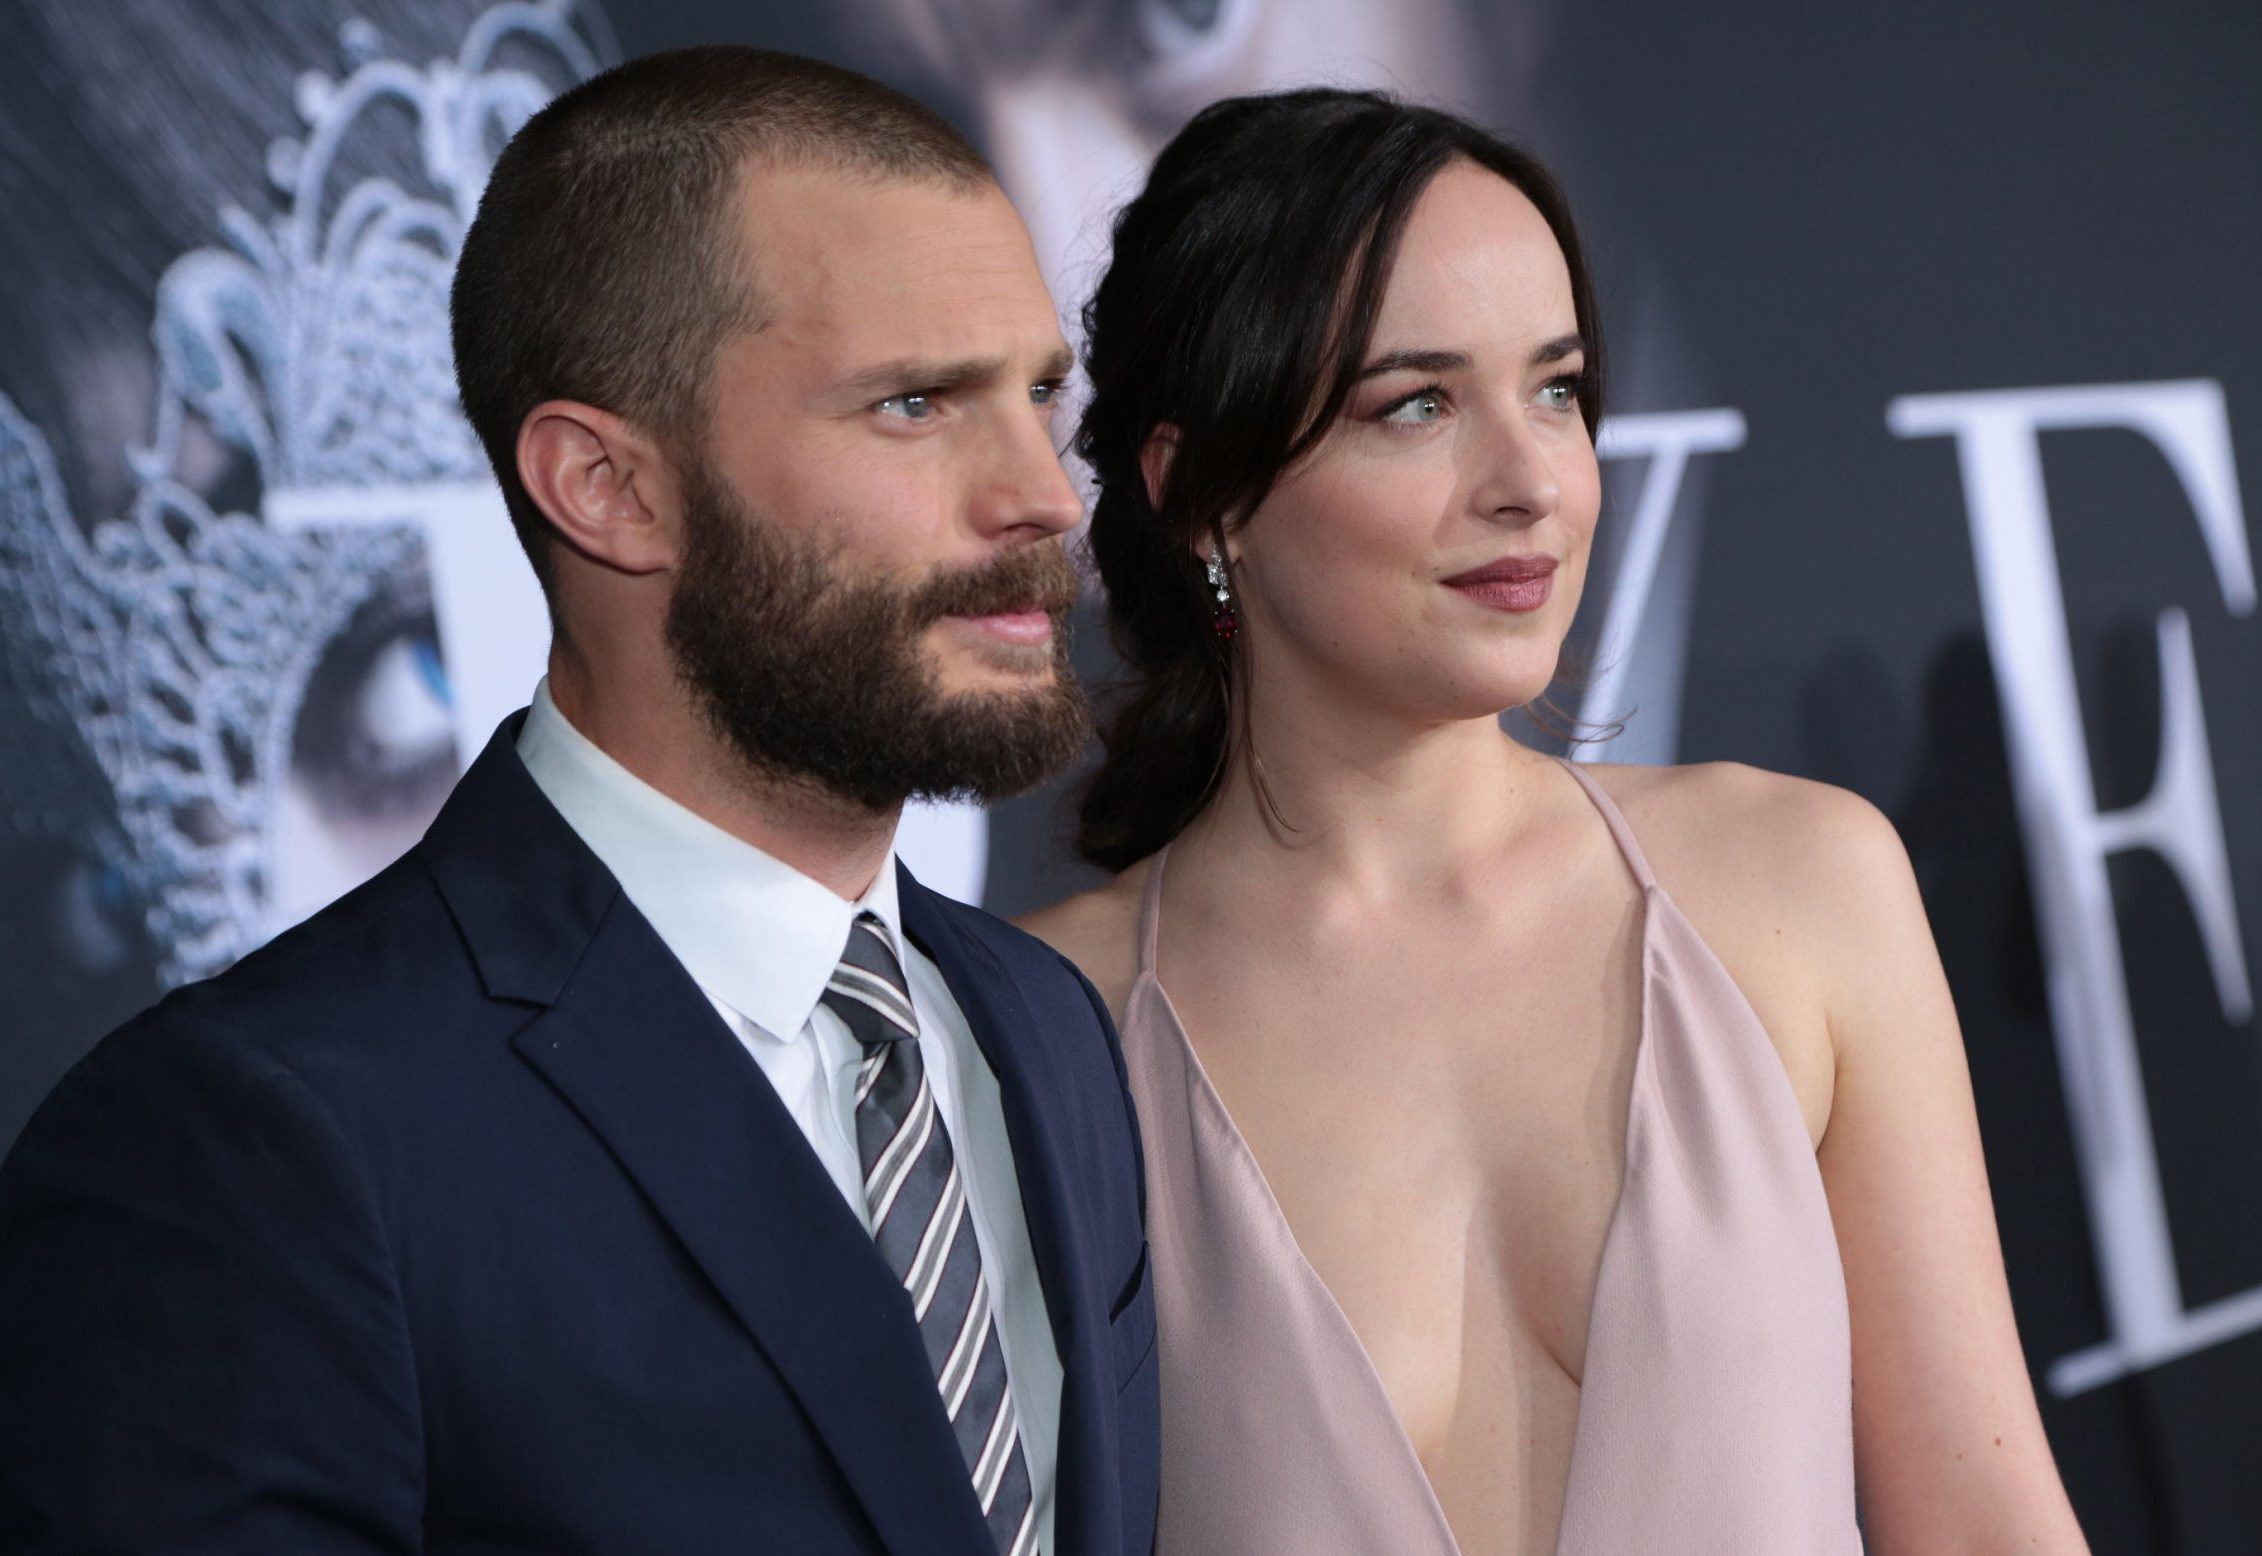 Mandatory Credit: Photo by Action Press/REX/Shutterstock (8268112ae) Jamie Dornan, Dakota Johnson 'Fifty Shades Darker' film premiere, Los Angeles, USA - 02 Feb 2017